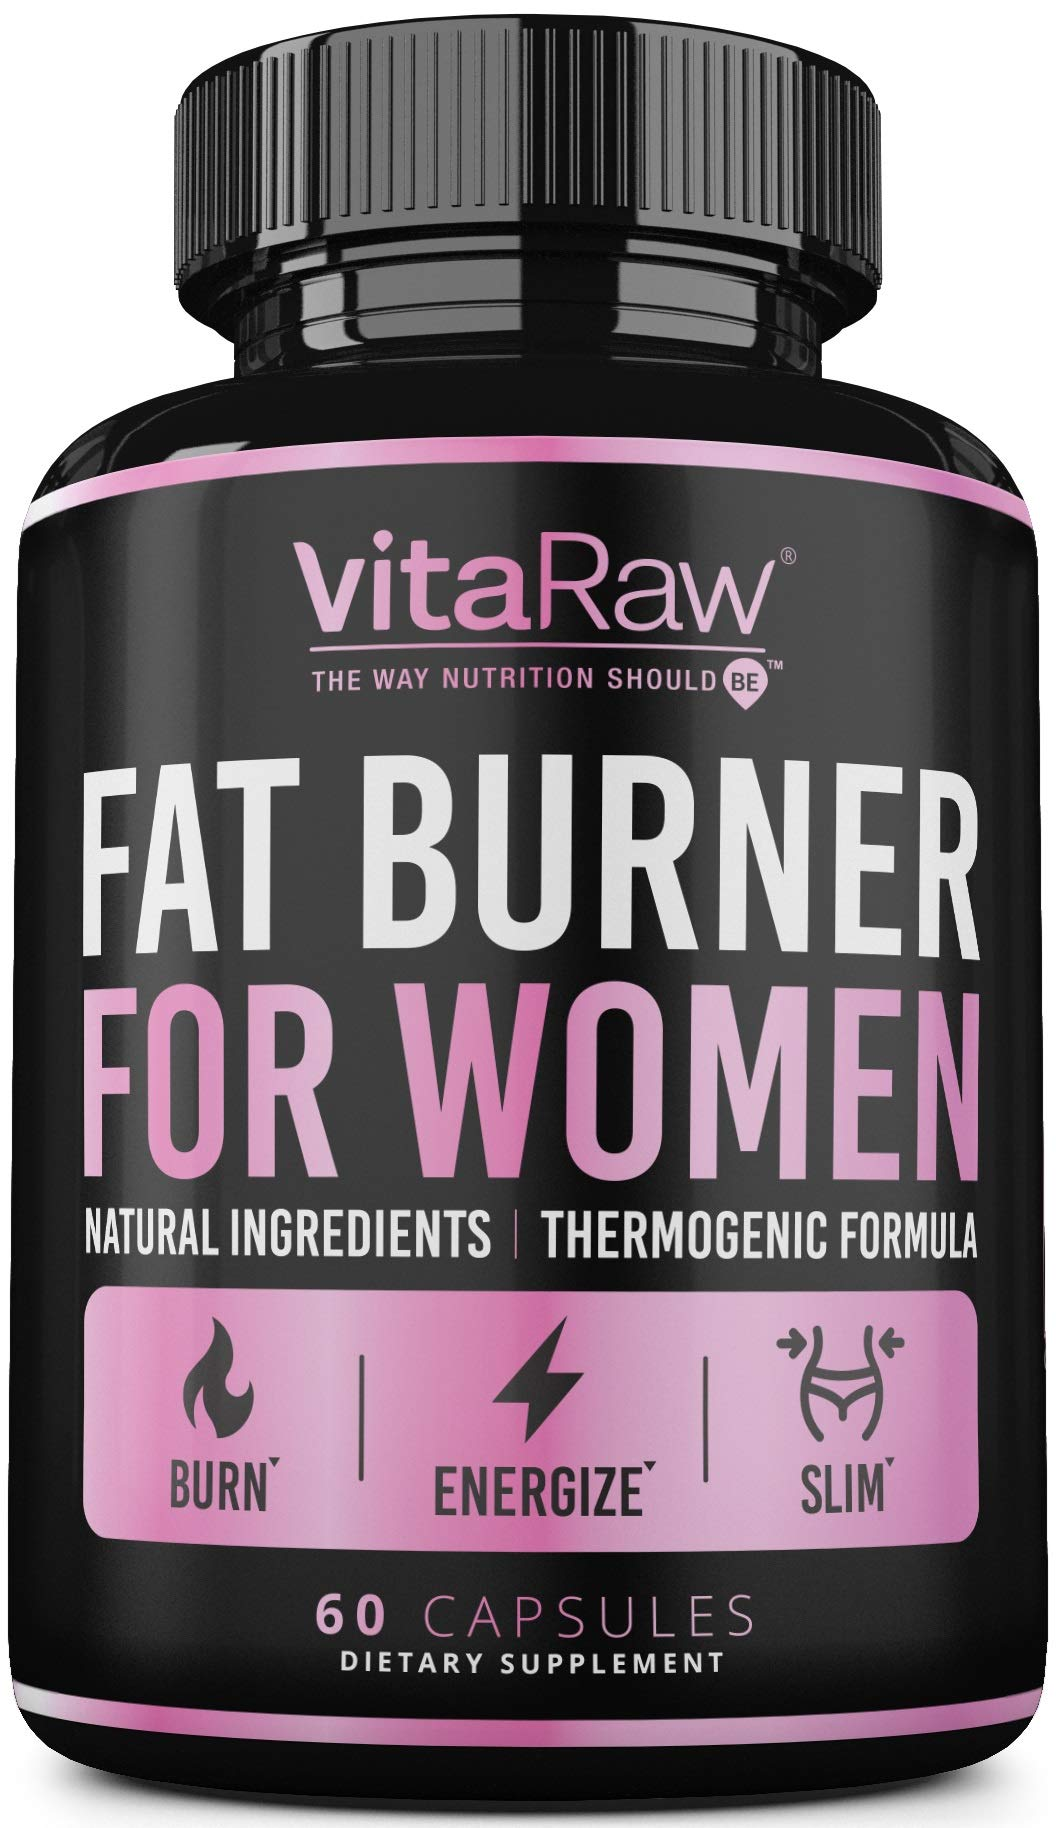 Weight Loss Pills for Women [ #1 Diet Pills That Work Fast for Women ] The Best Fat Burners for Women - This Thermogenic Fat Burner is a Natural Appetite suppressant & Metabolism Booster Supplement by VitaRaw